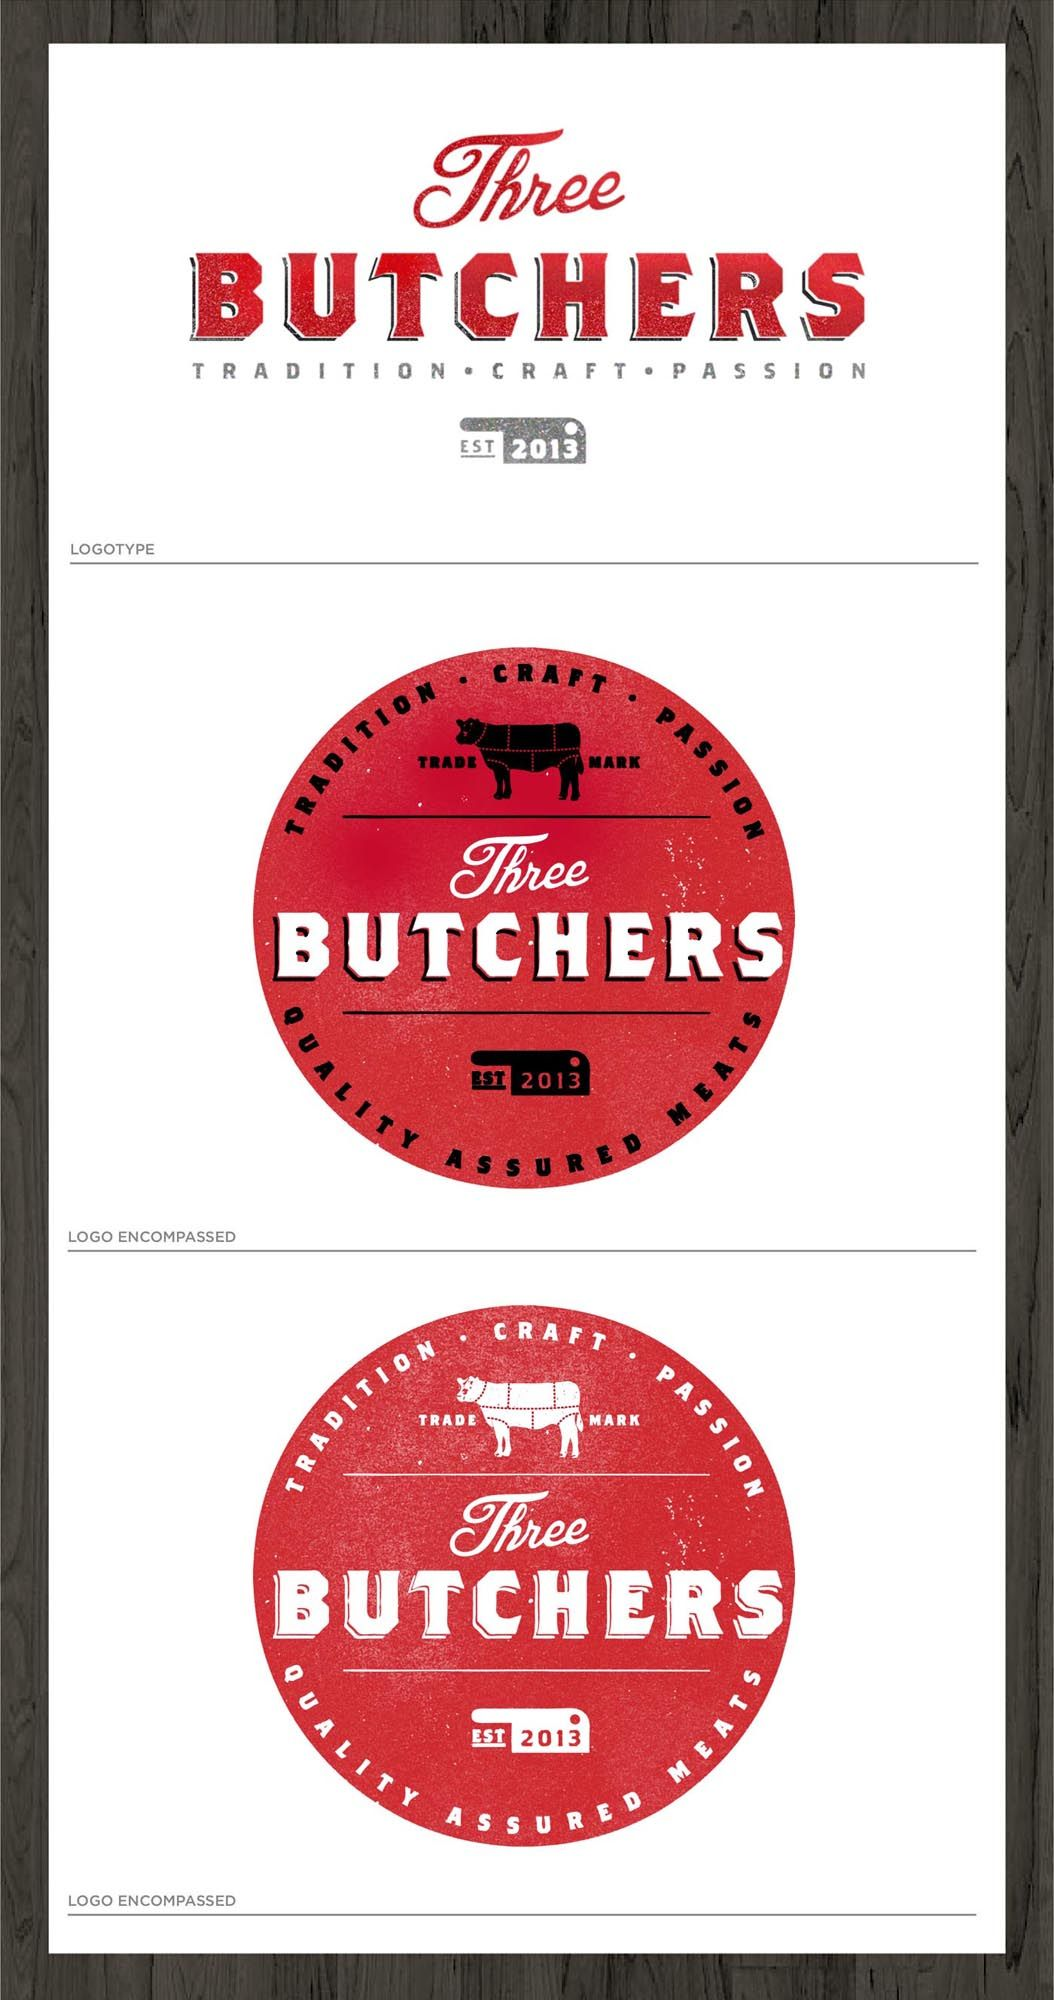 Stewdeane created this logo for Three Butchers an online